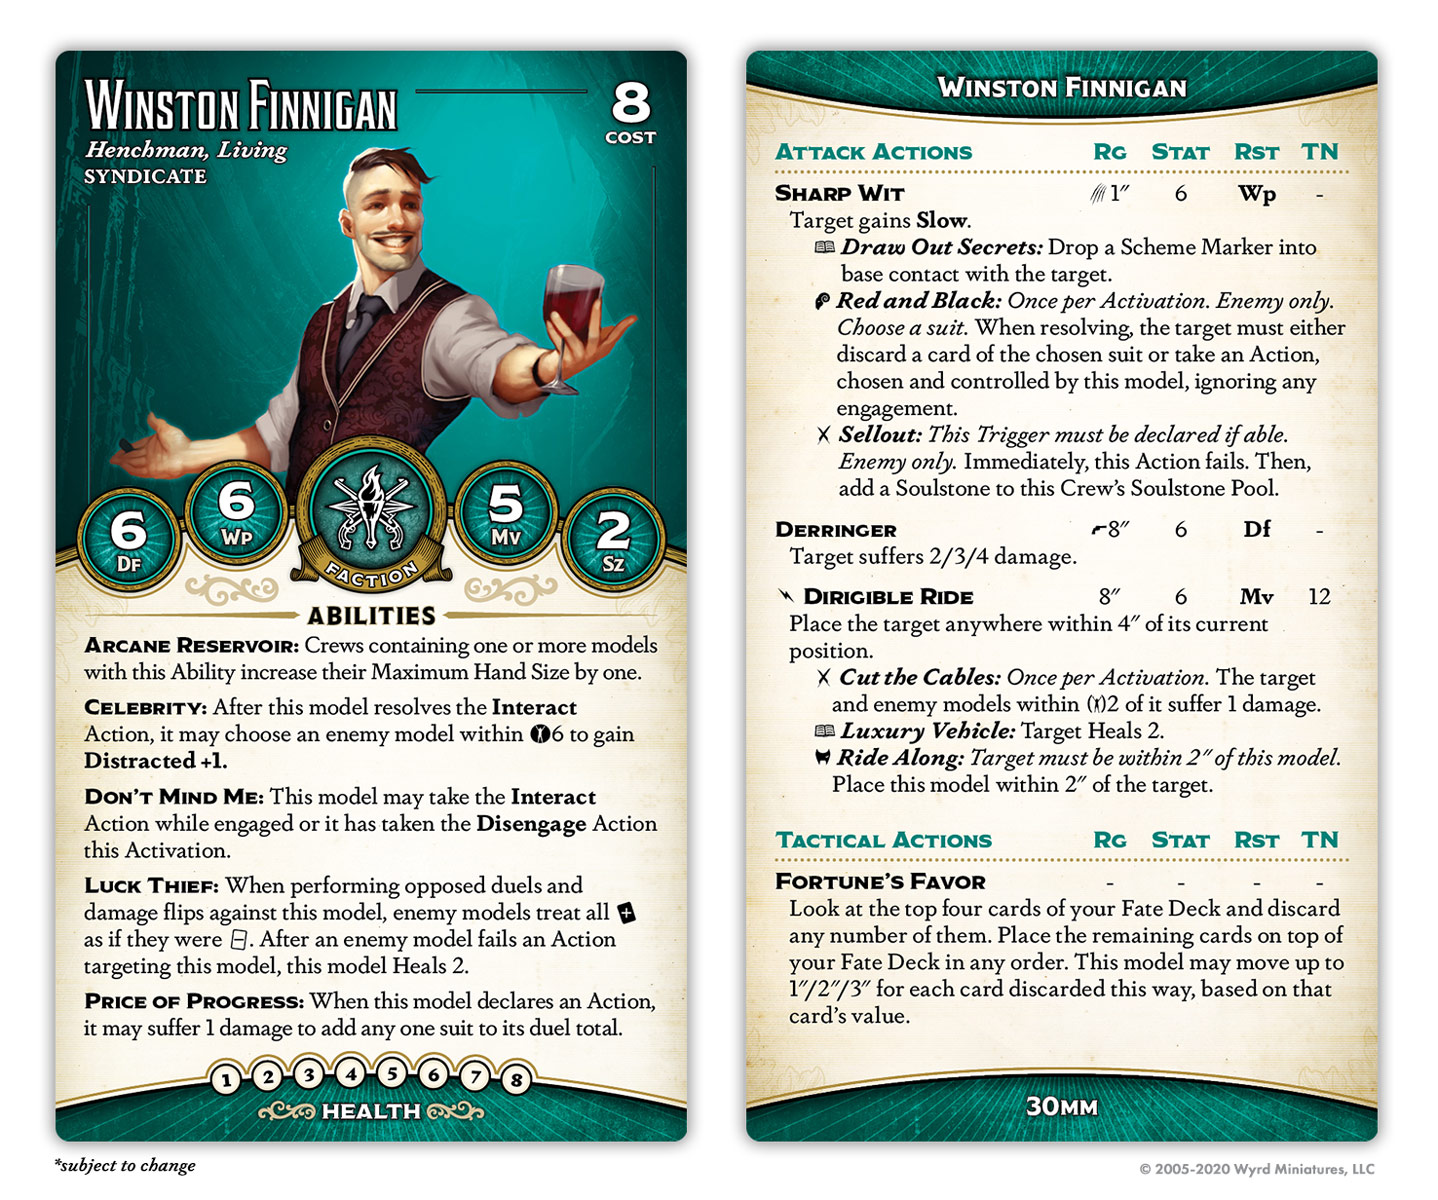 Winston Finnigan Card - Wyrd Games